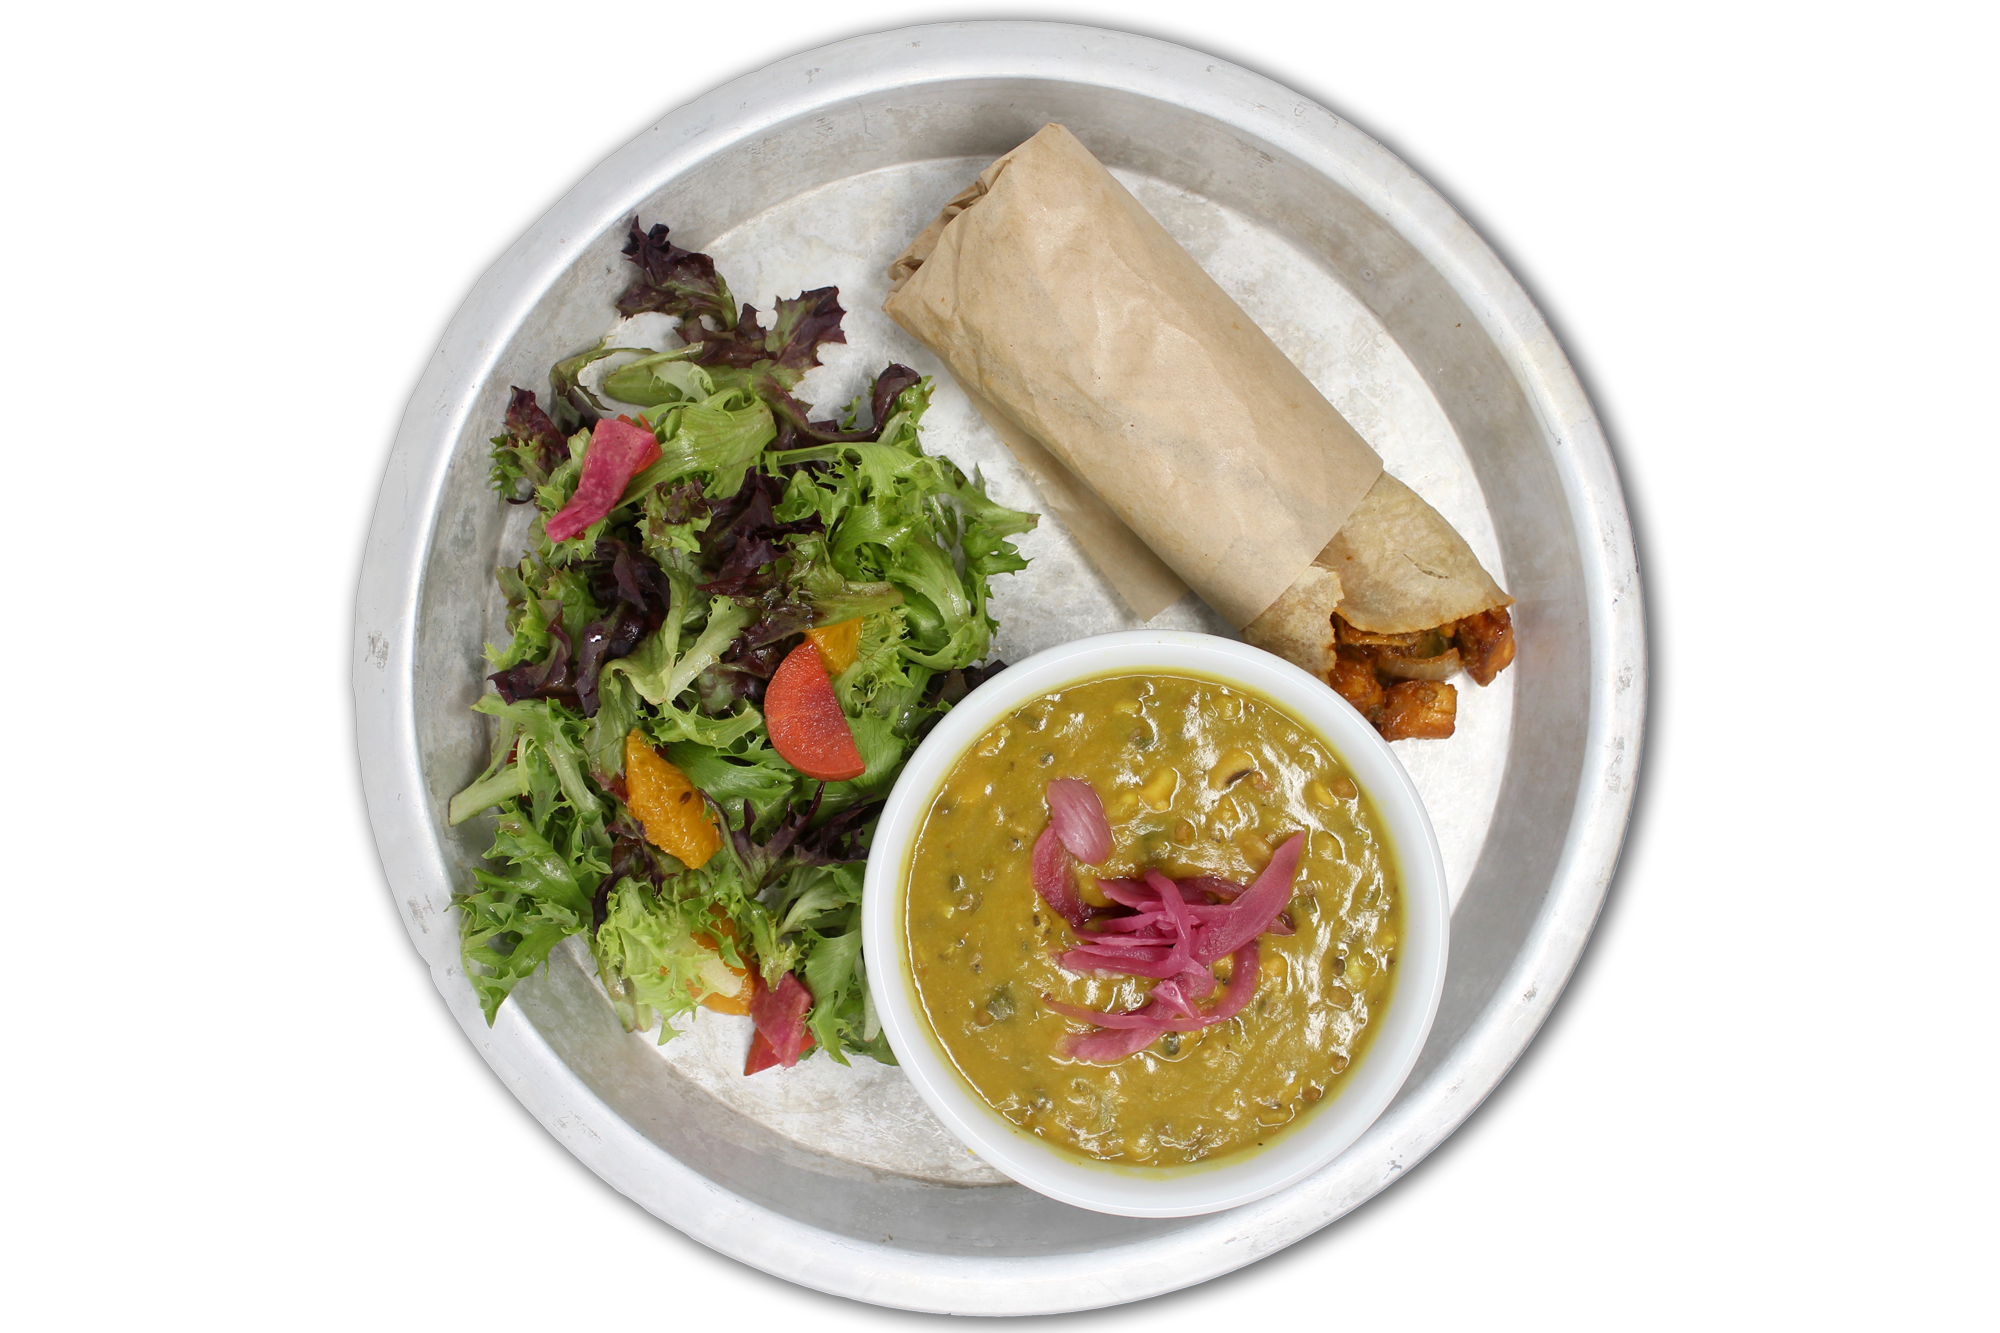 SOUP N' ROLL   choice of chicken, paneer (VG) or free range plant protein (V) wrapped in a brown rice tortilla, daal lentil soup, local organic salad (GF)